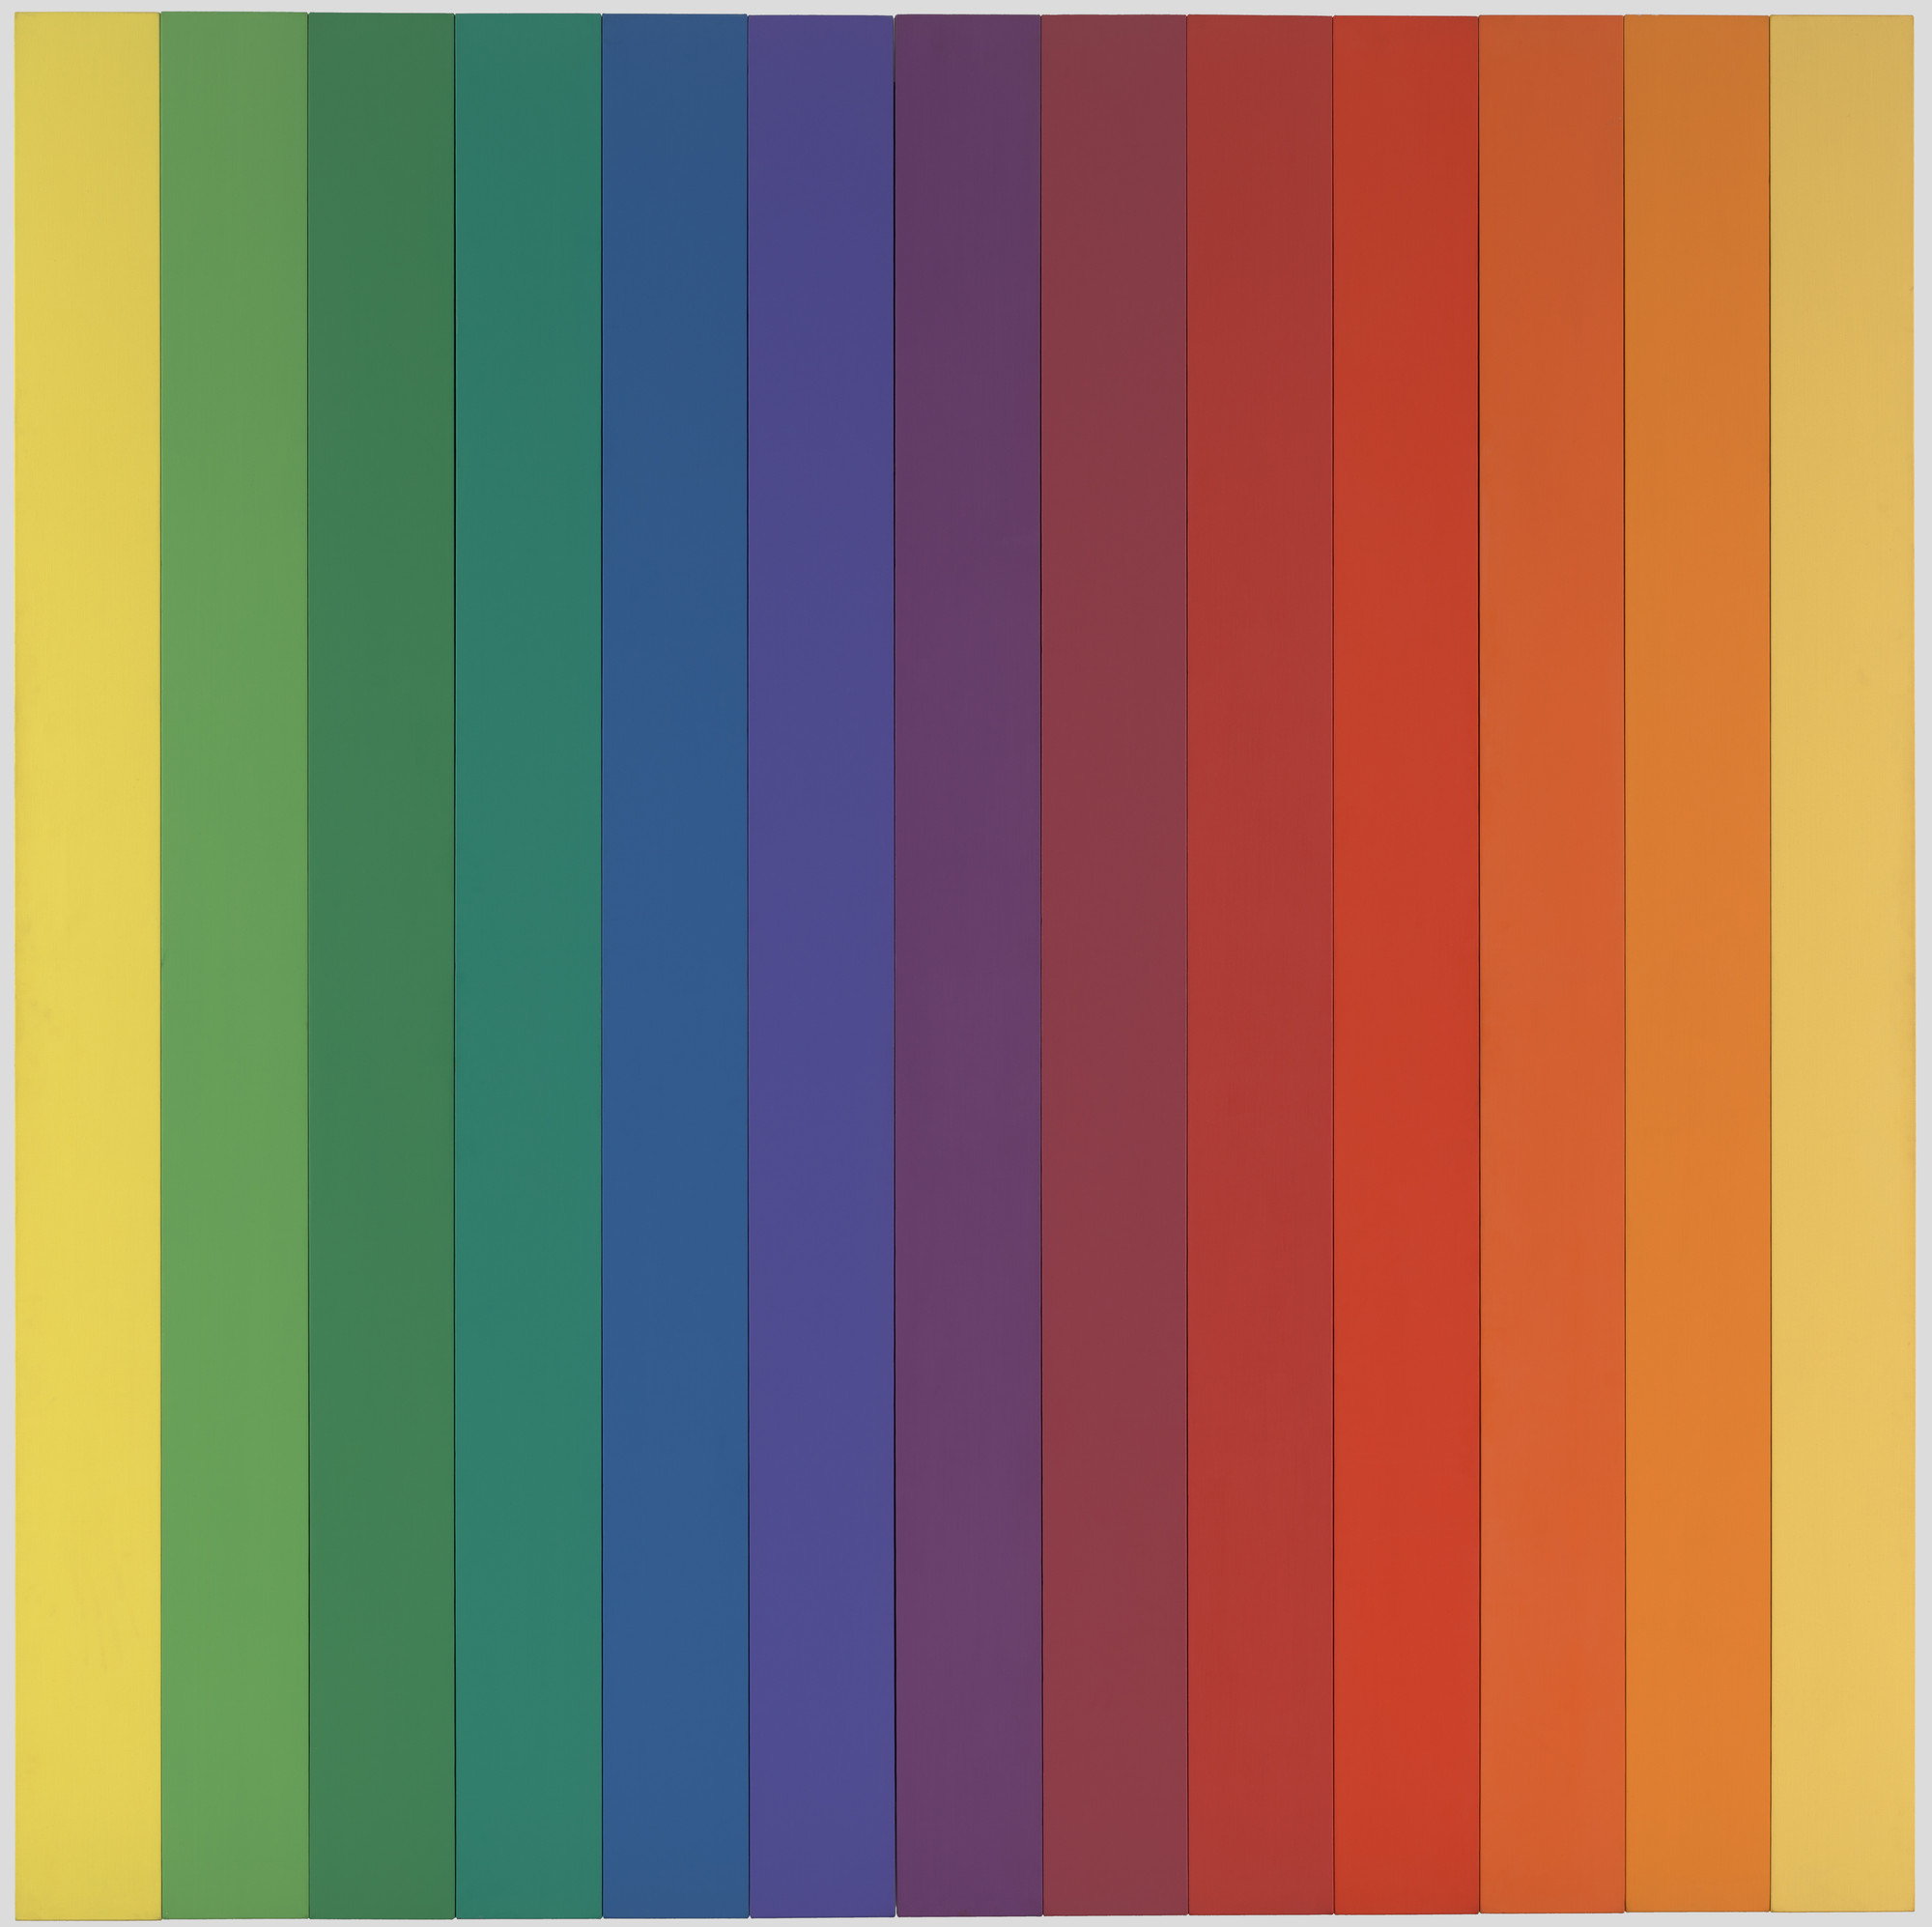 Ellsworth Kelly. Spectrum IV. 1967